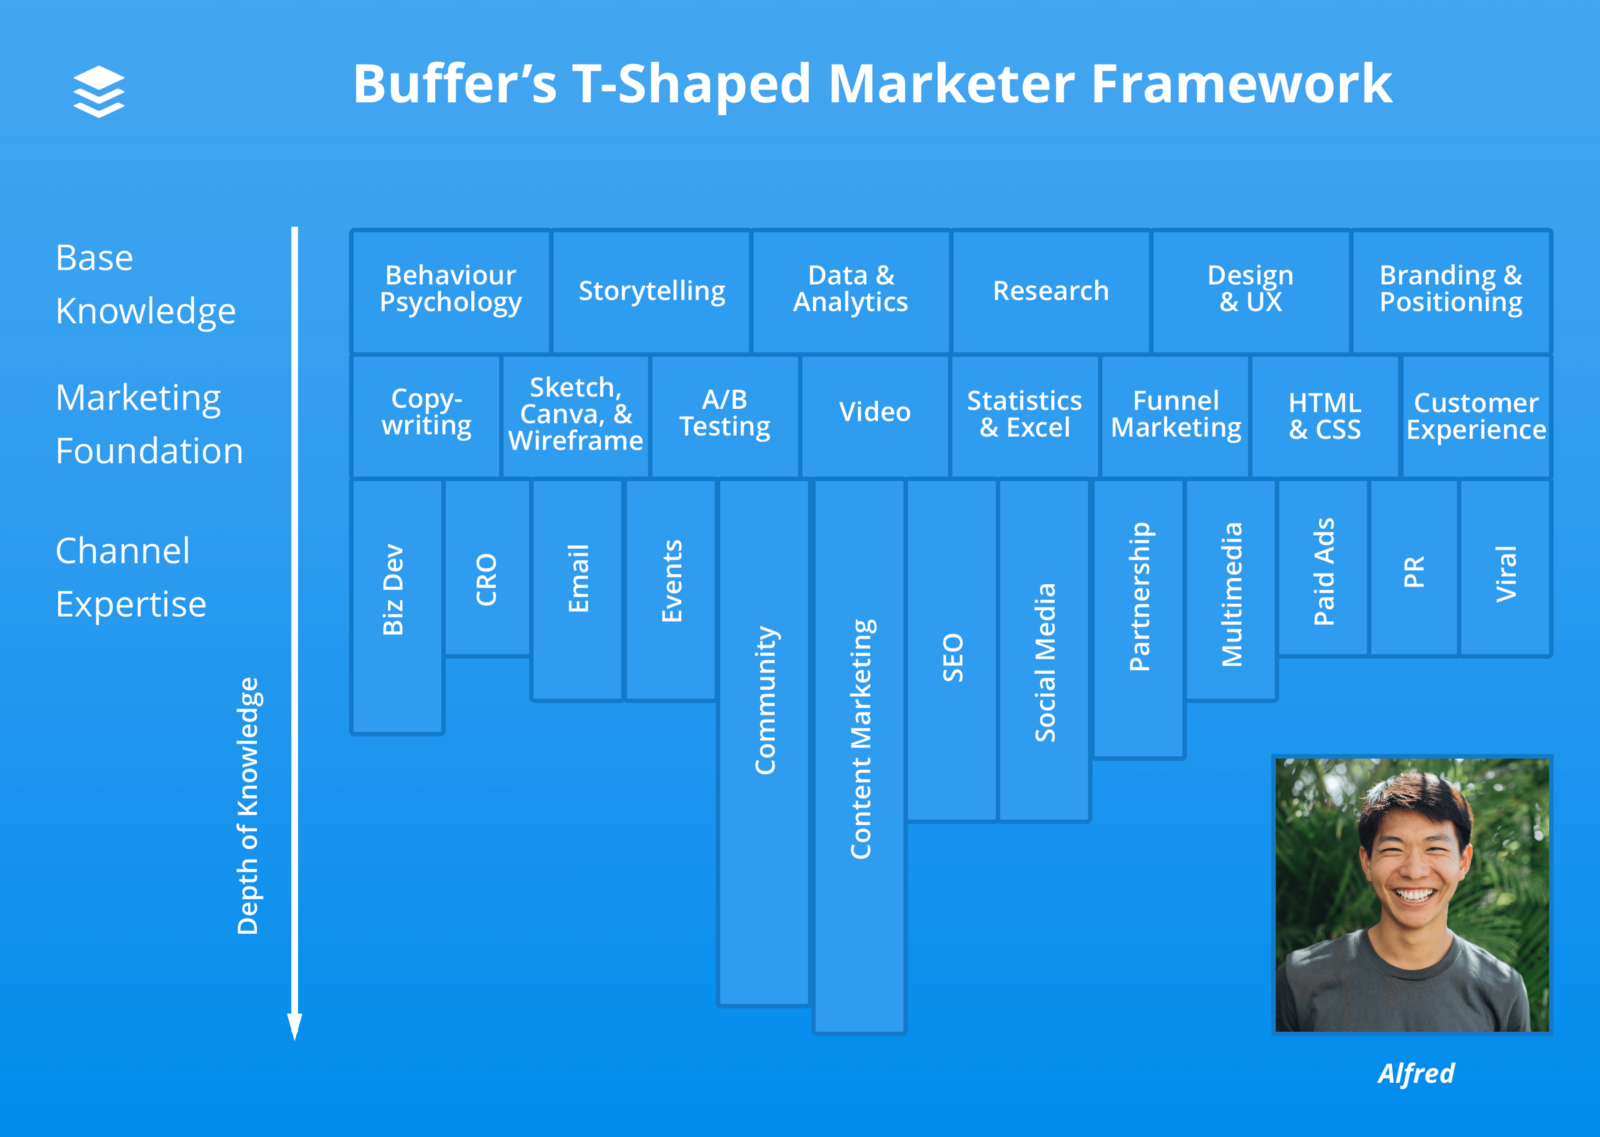 Alfred T-shaped marketer diagram